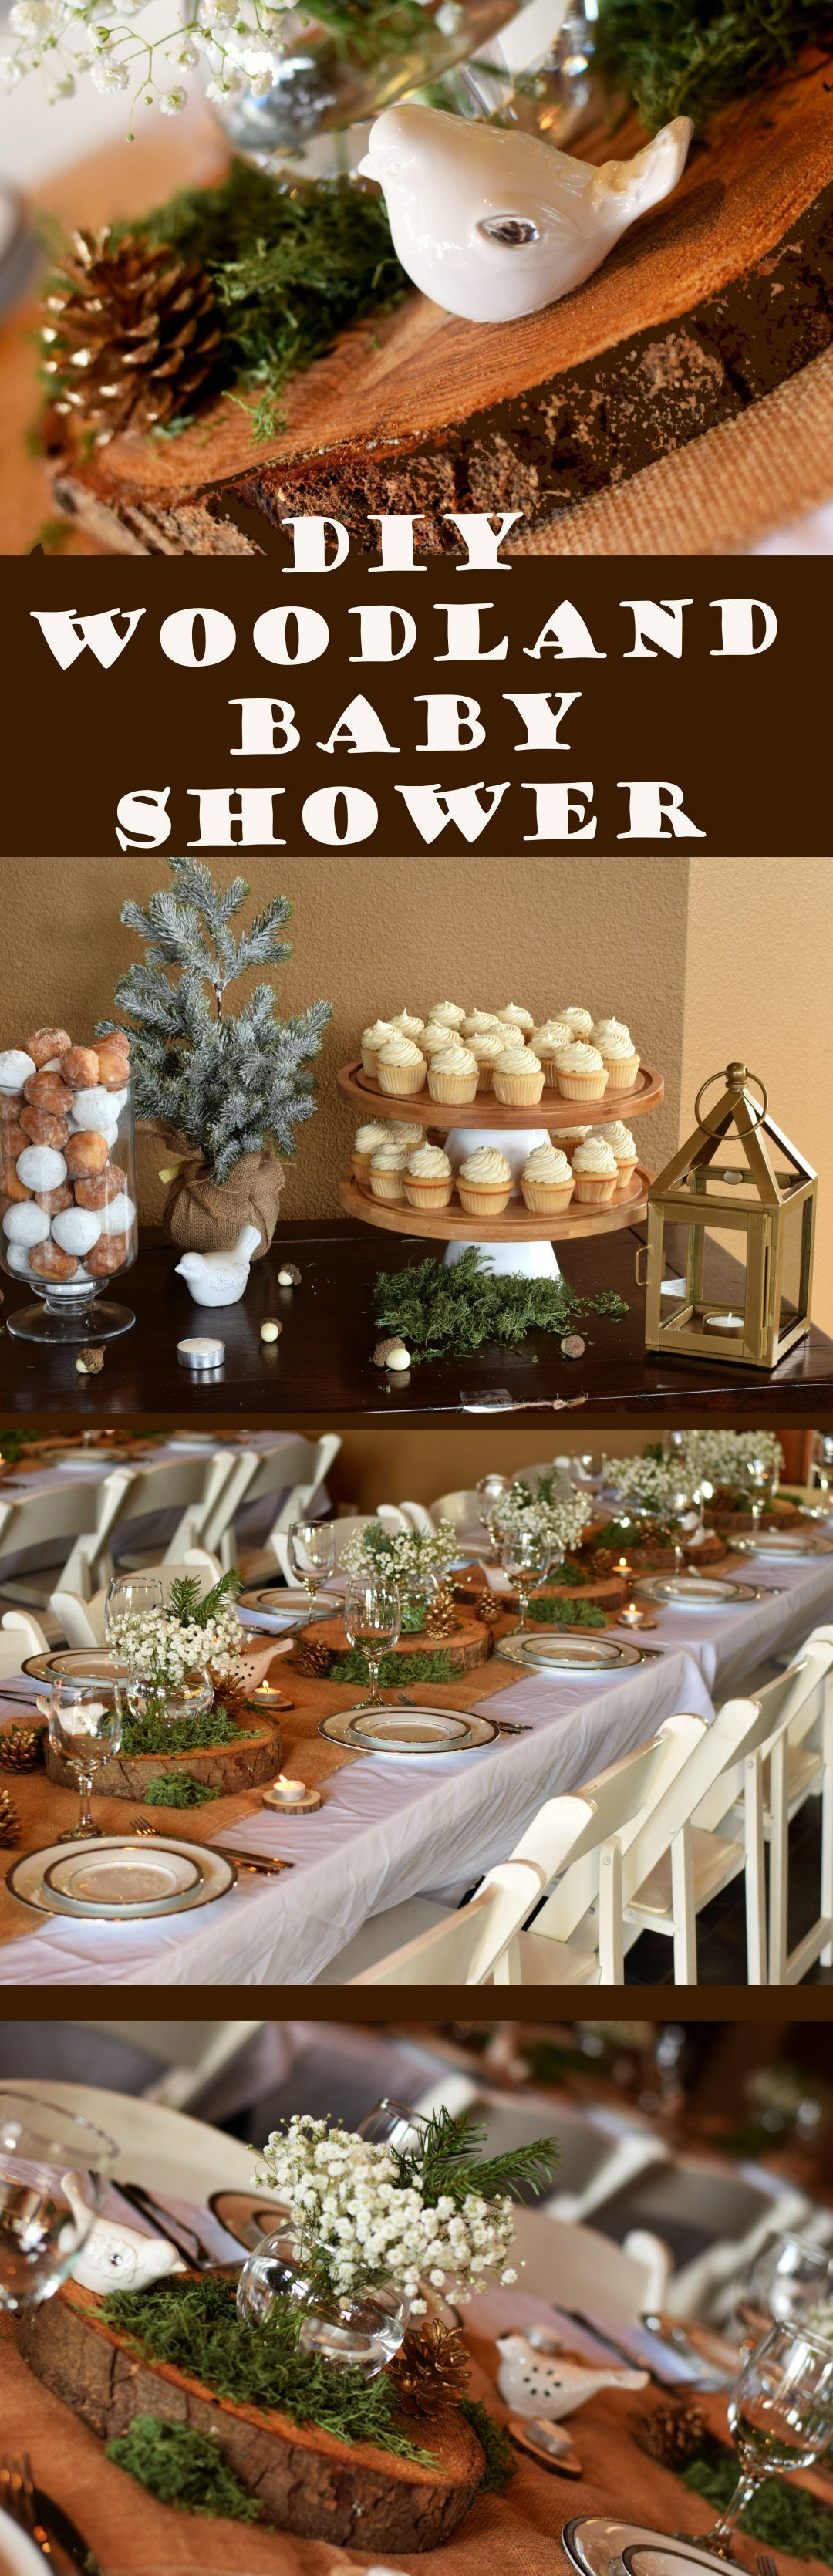 Learn how you can throw an amazing Woodland Baby Shower with